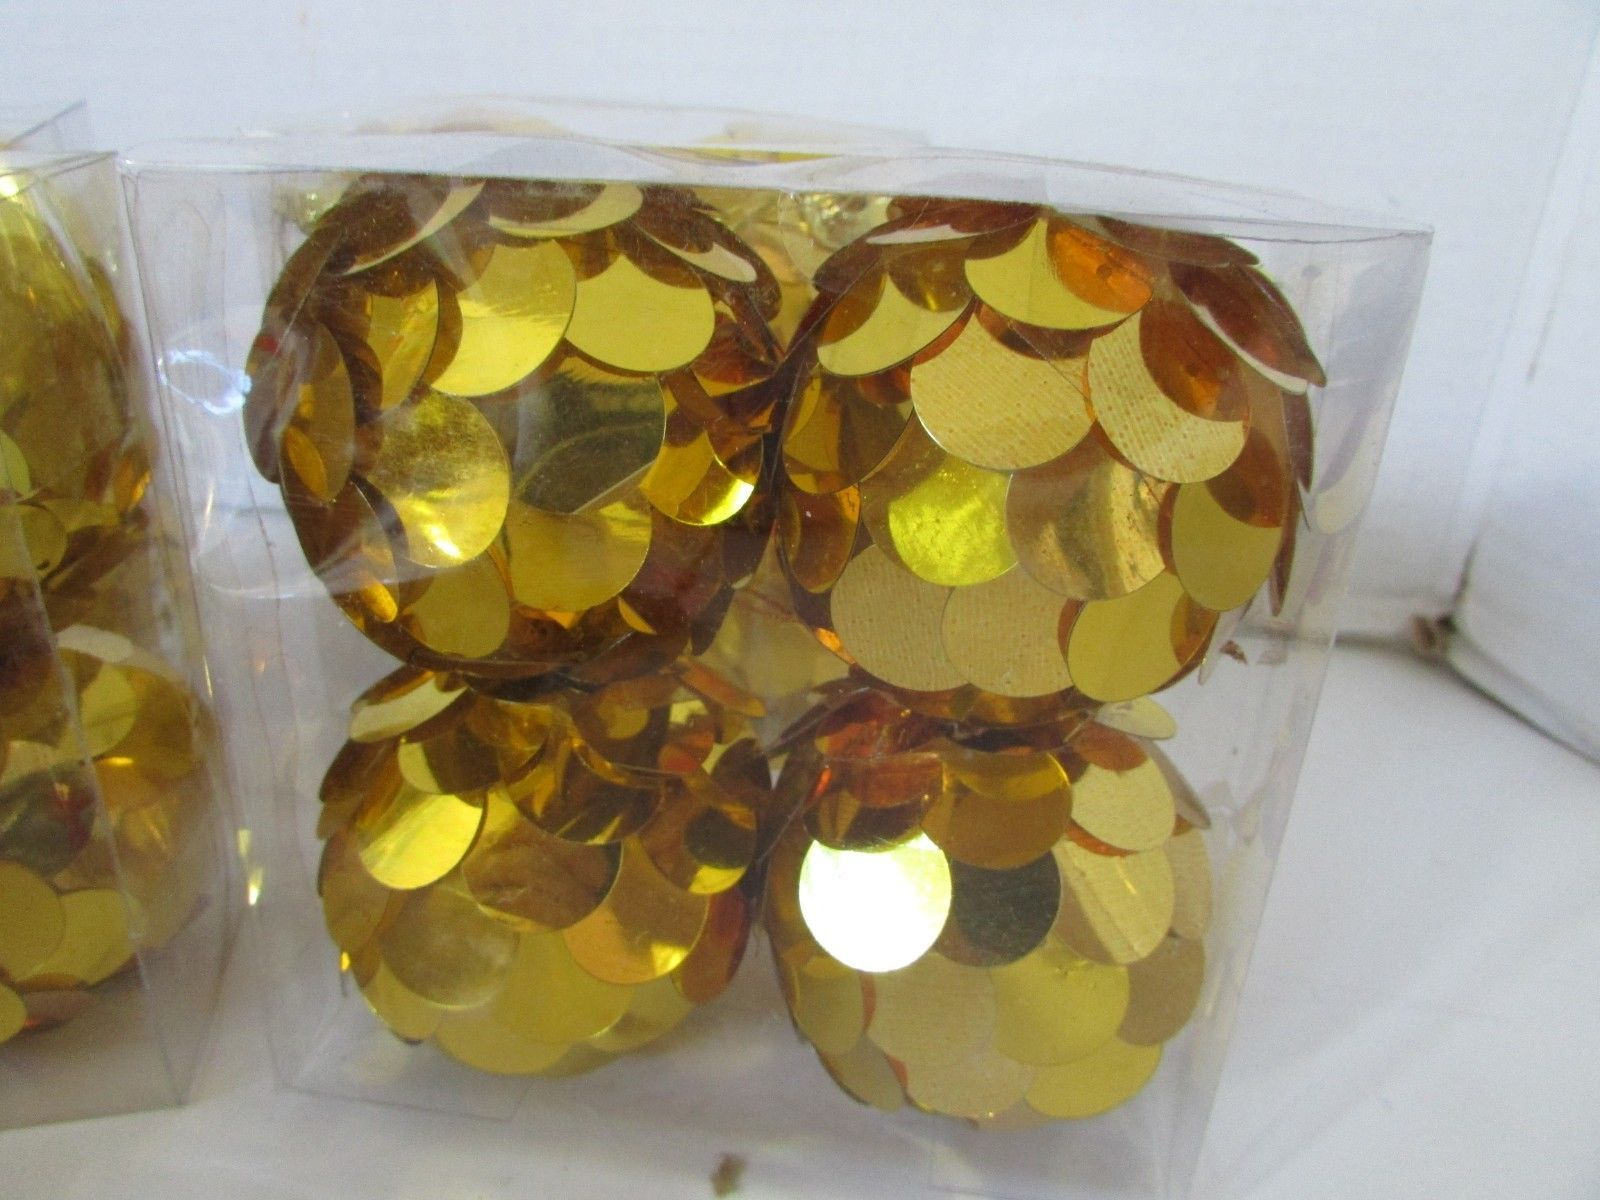 "5 BOXES OF 4 EACH GOLD SEQUINS CHRISTMAS TREE BALL ORNAMENTS NIB 3"" UNBREAKABLE"